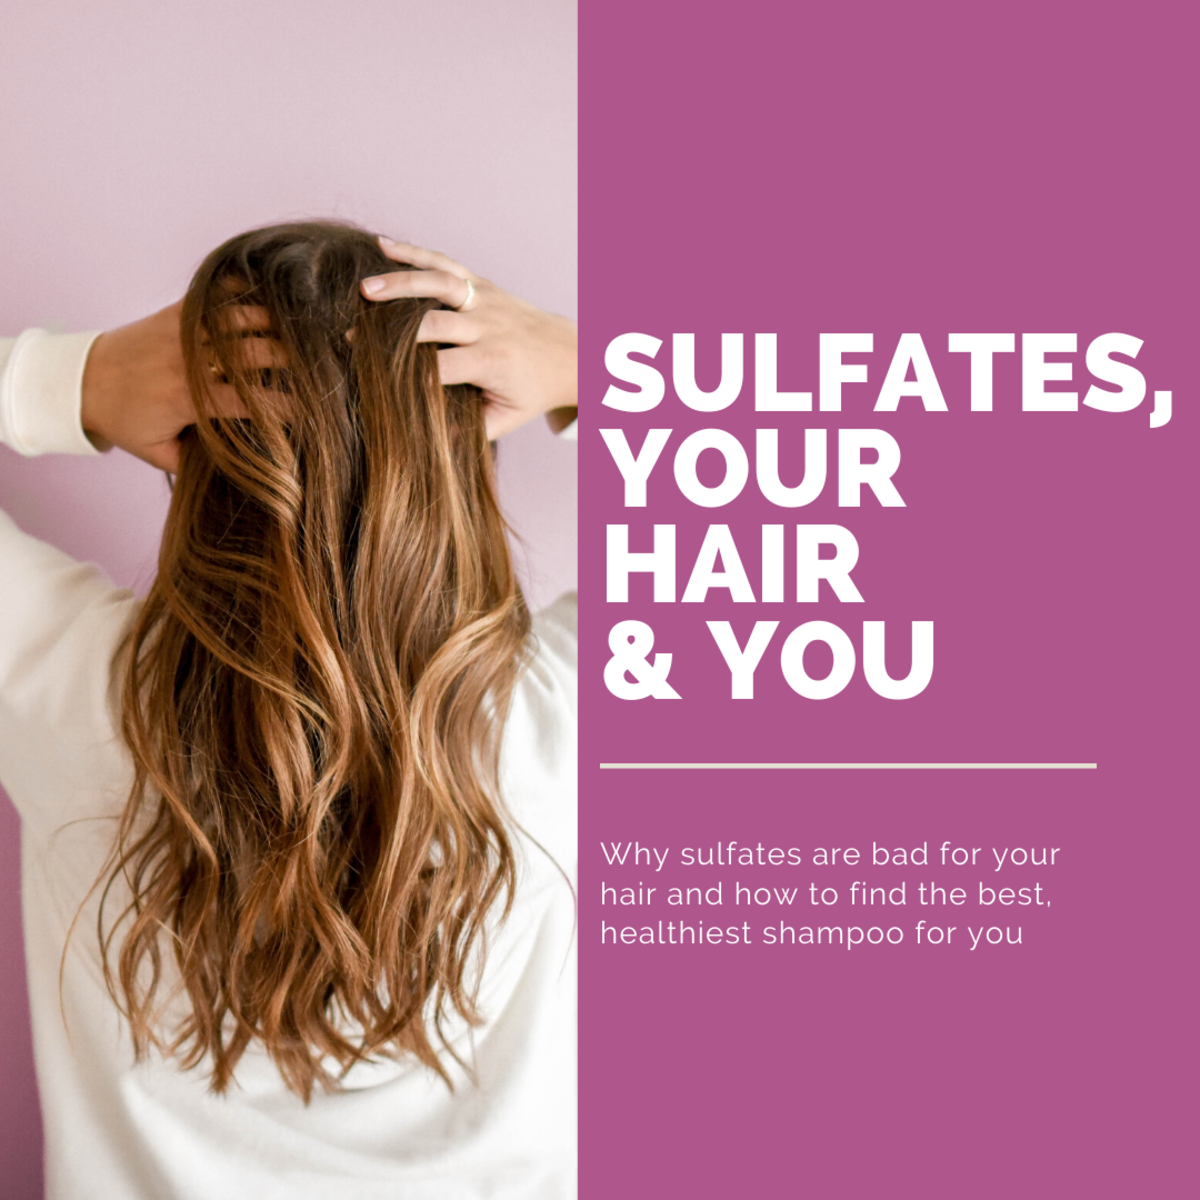 Is Sulfate Bad for Your Hair? (Effects of Sulfates in ...